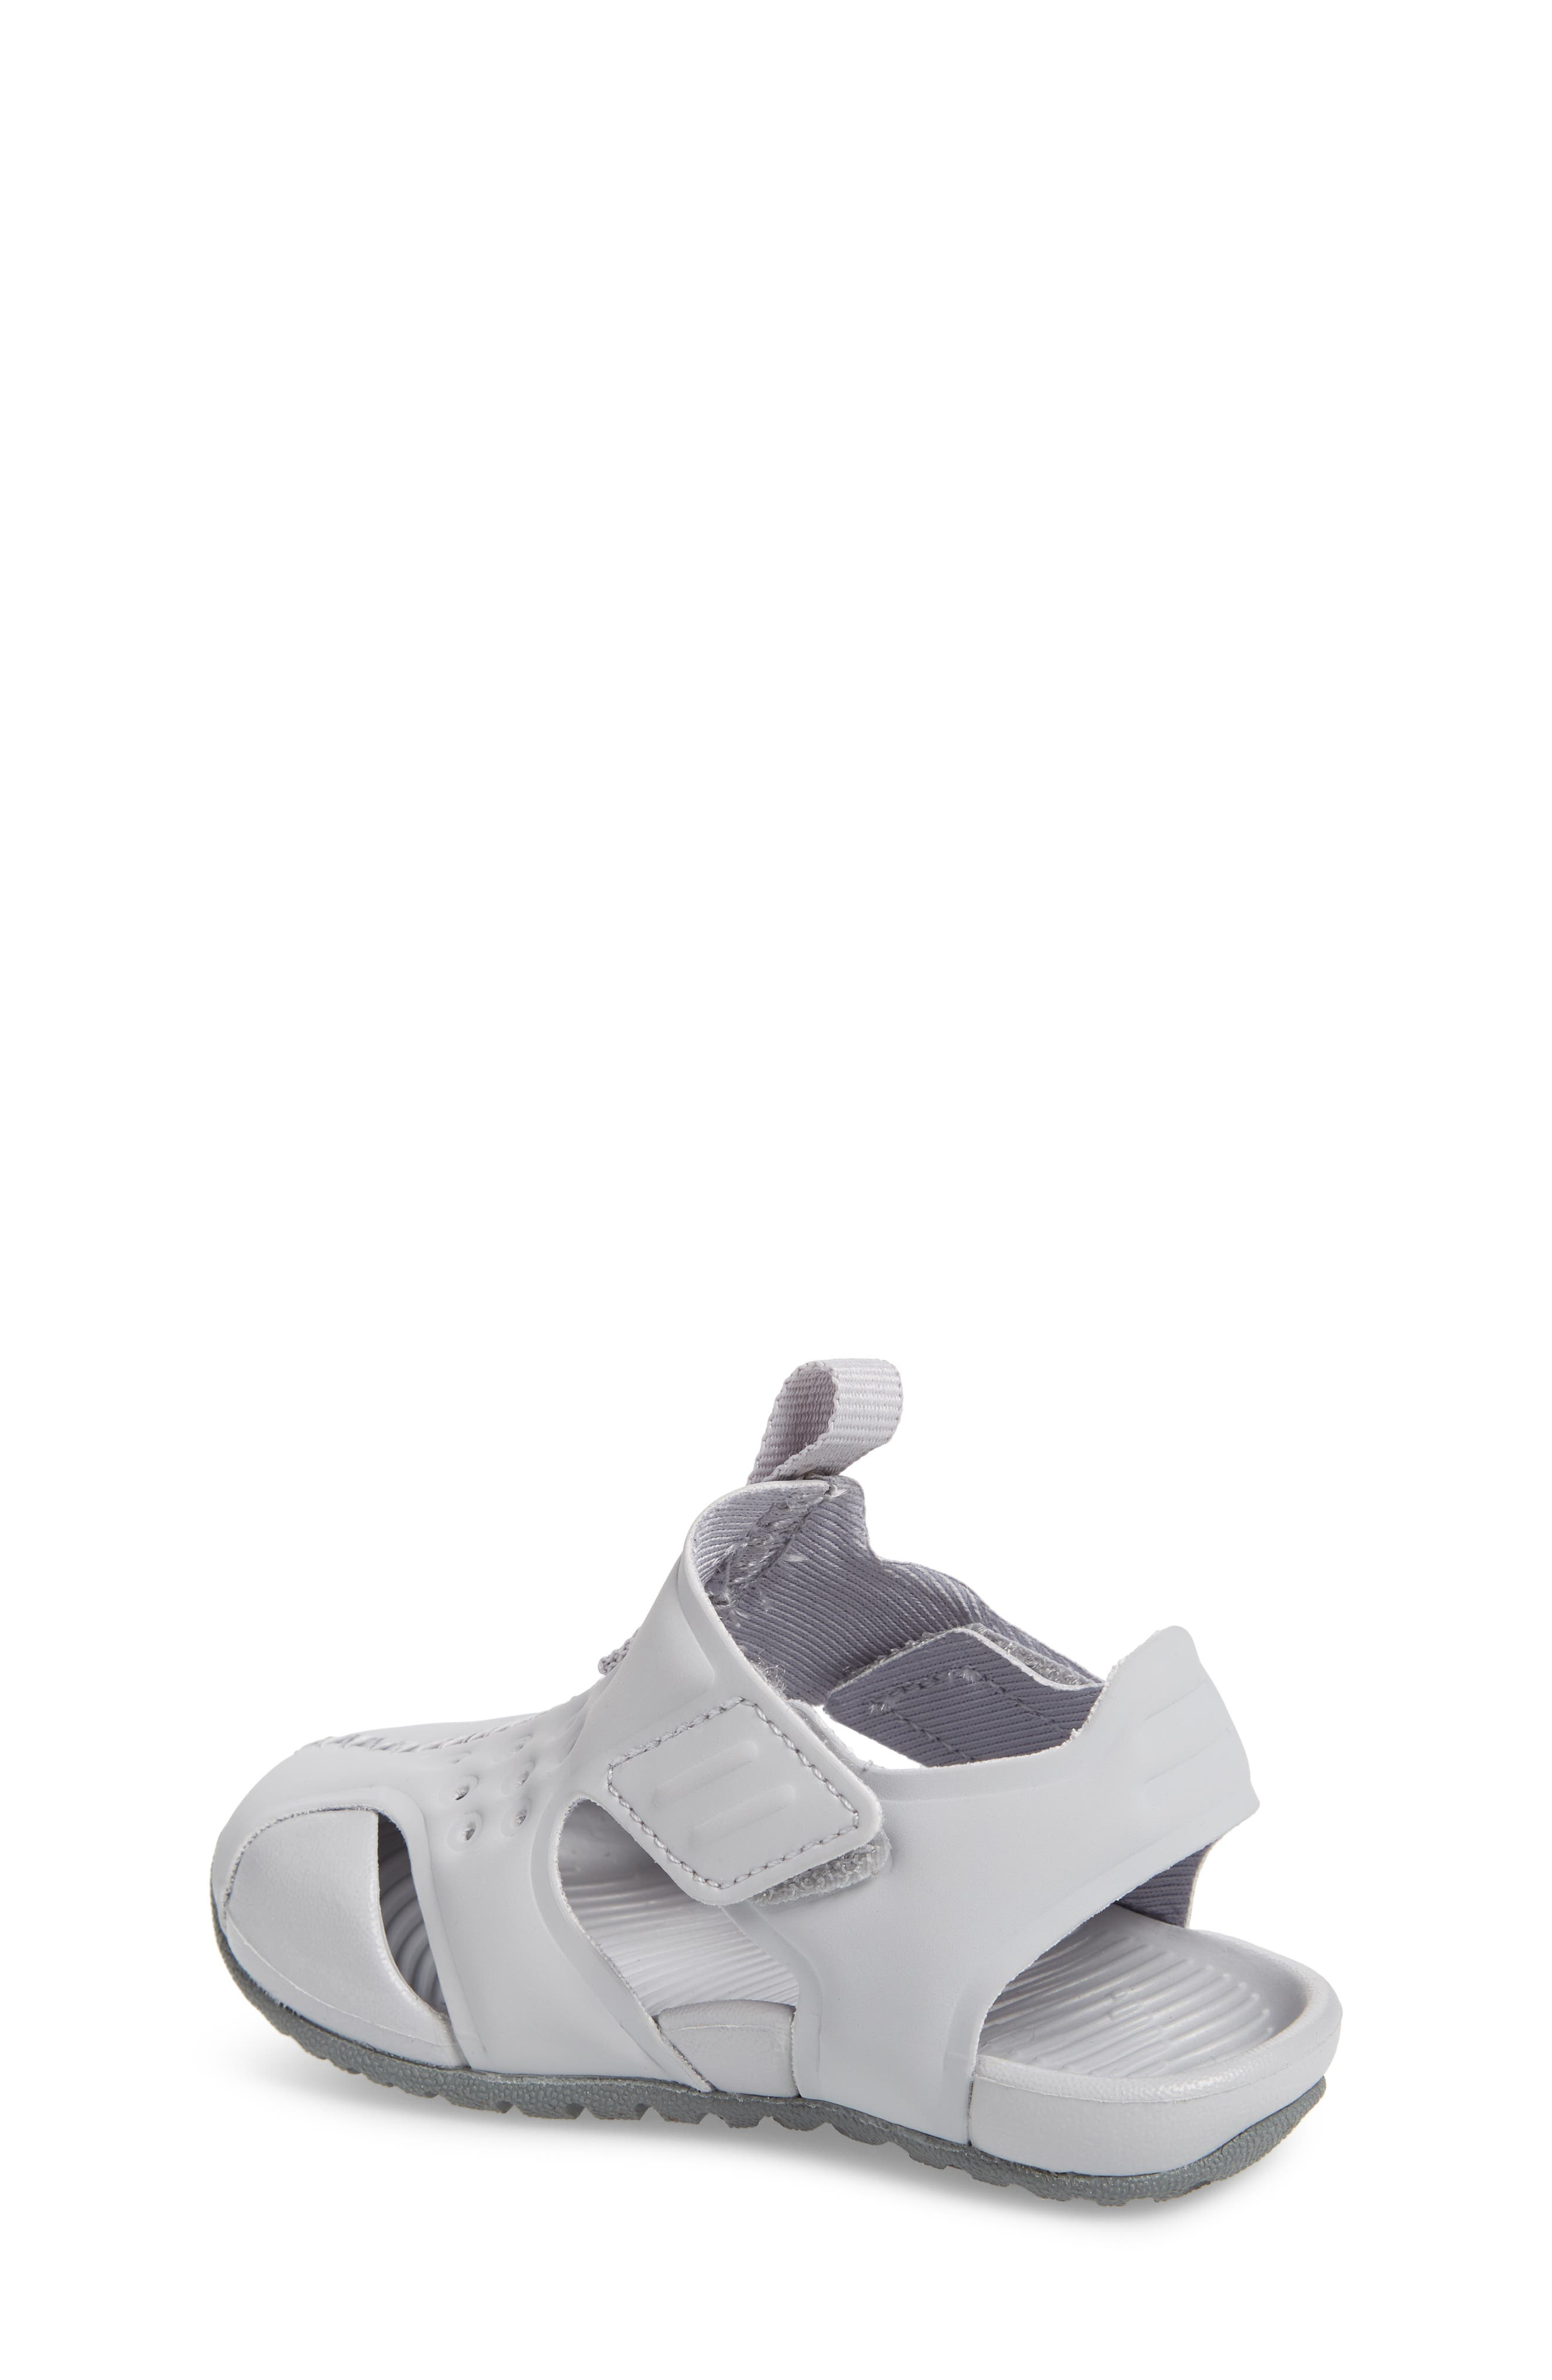 Sunray Protect 2 Sandal,                             Alternate thumbnail 2, color,                             WHITE/ WOLF GREY